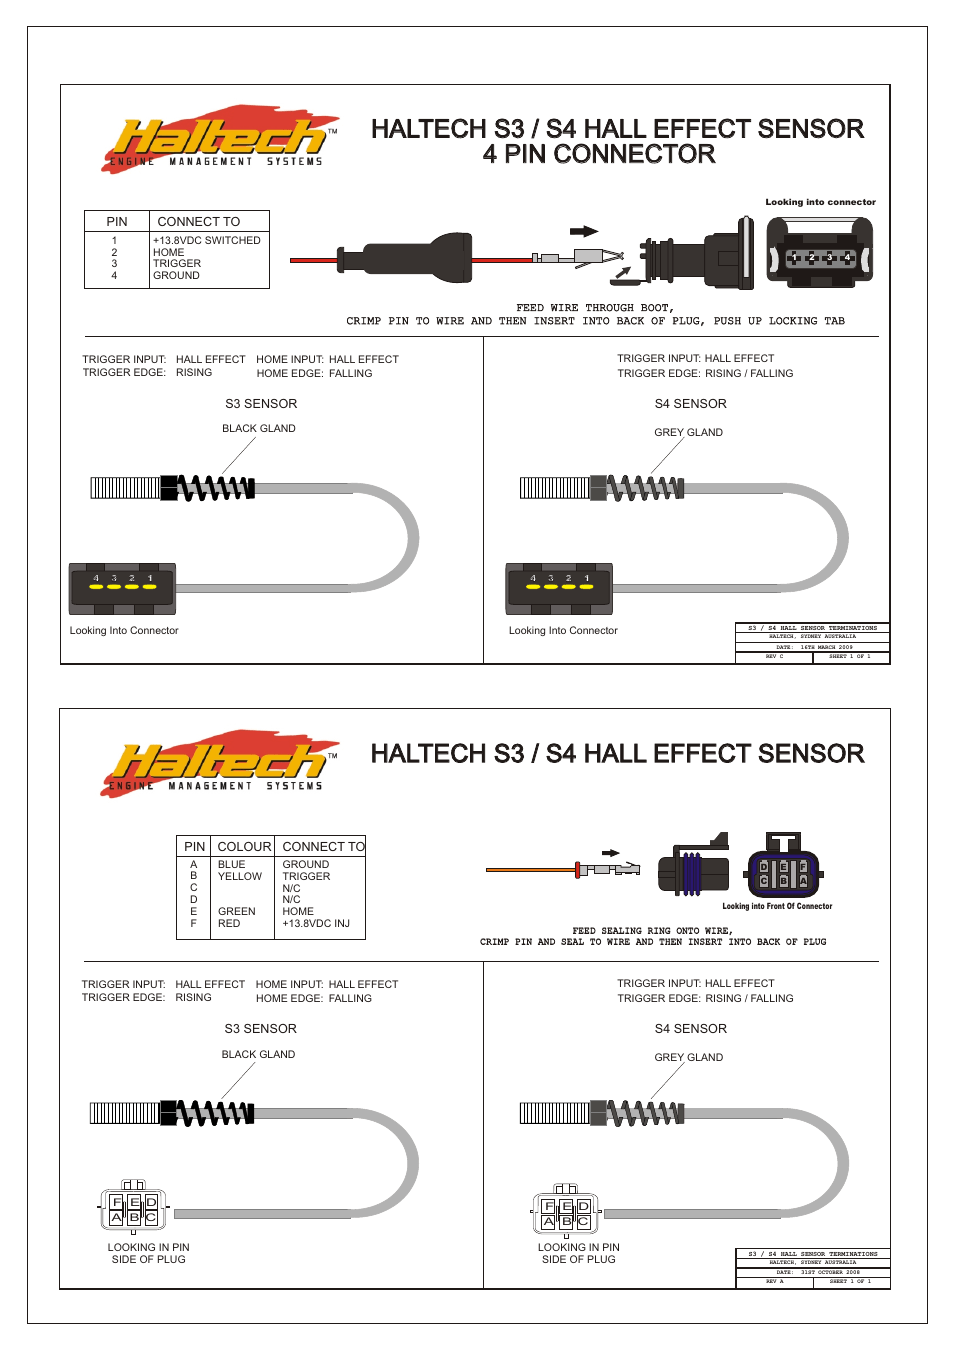 medium resolution of  wiring diagram haltech s3 s4 hall effect sensor 4 pin connector haltech s3 s4 rh manualsdir com hall